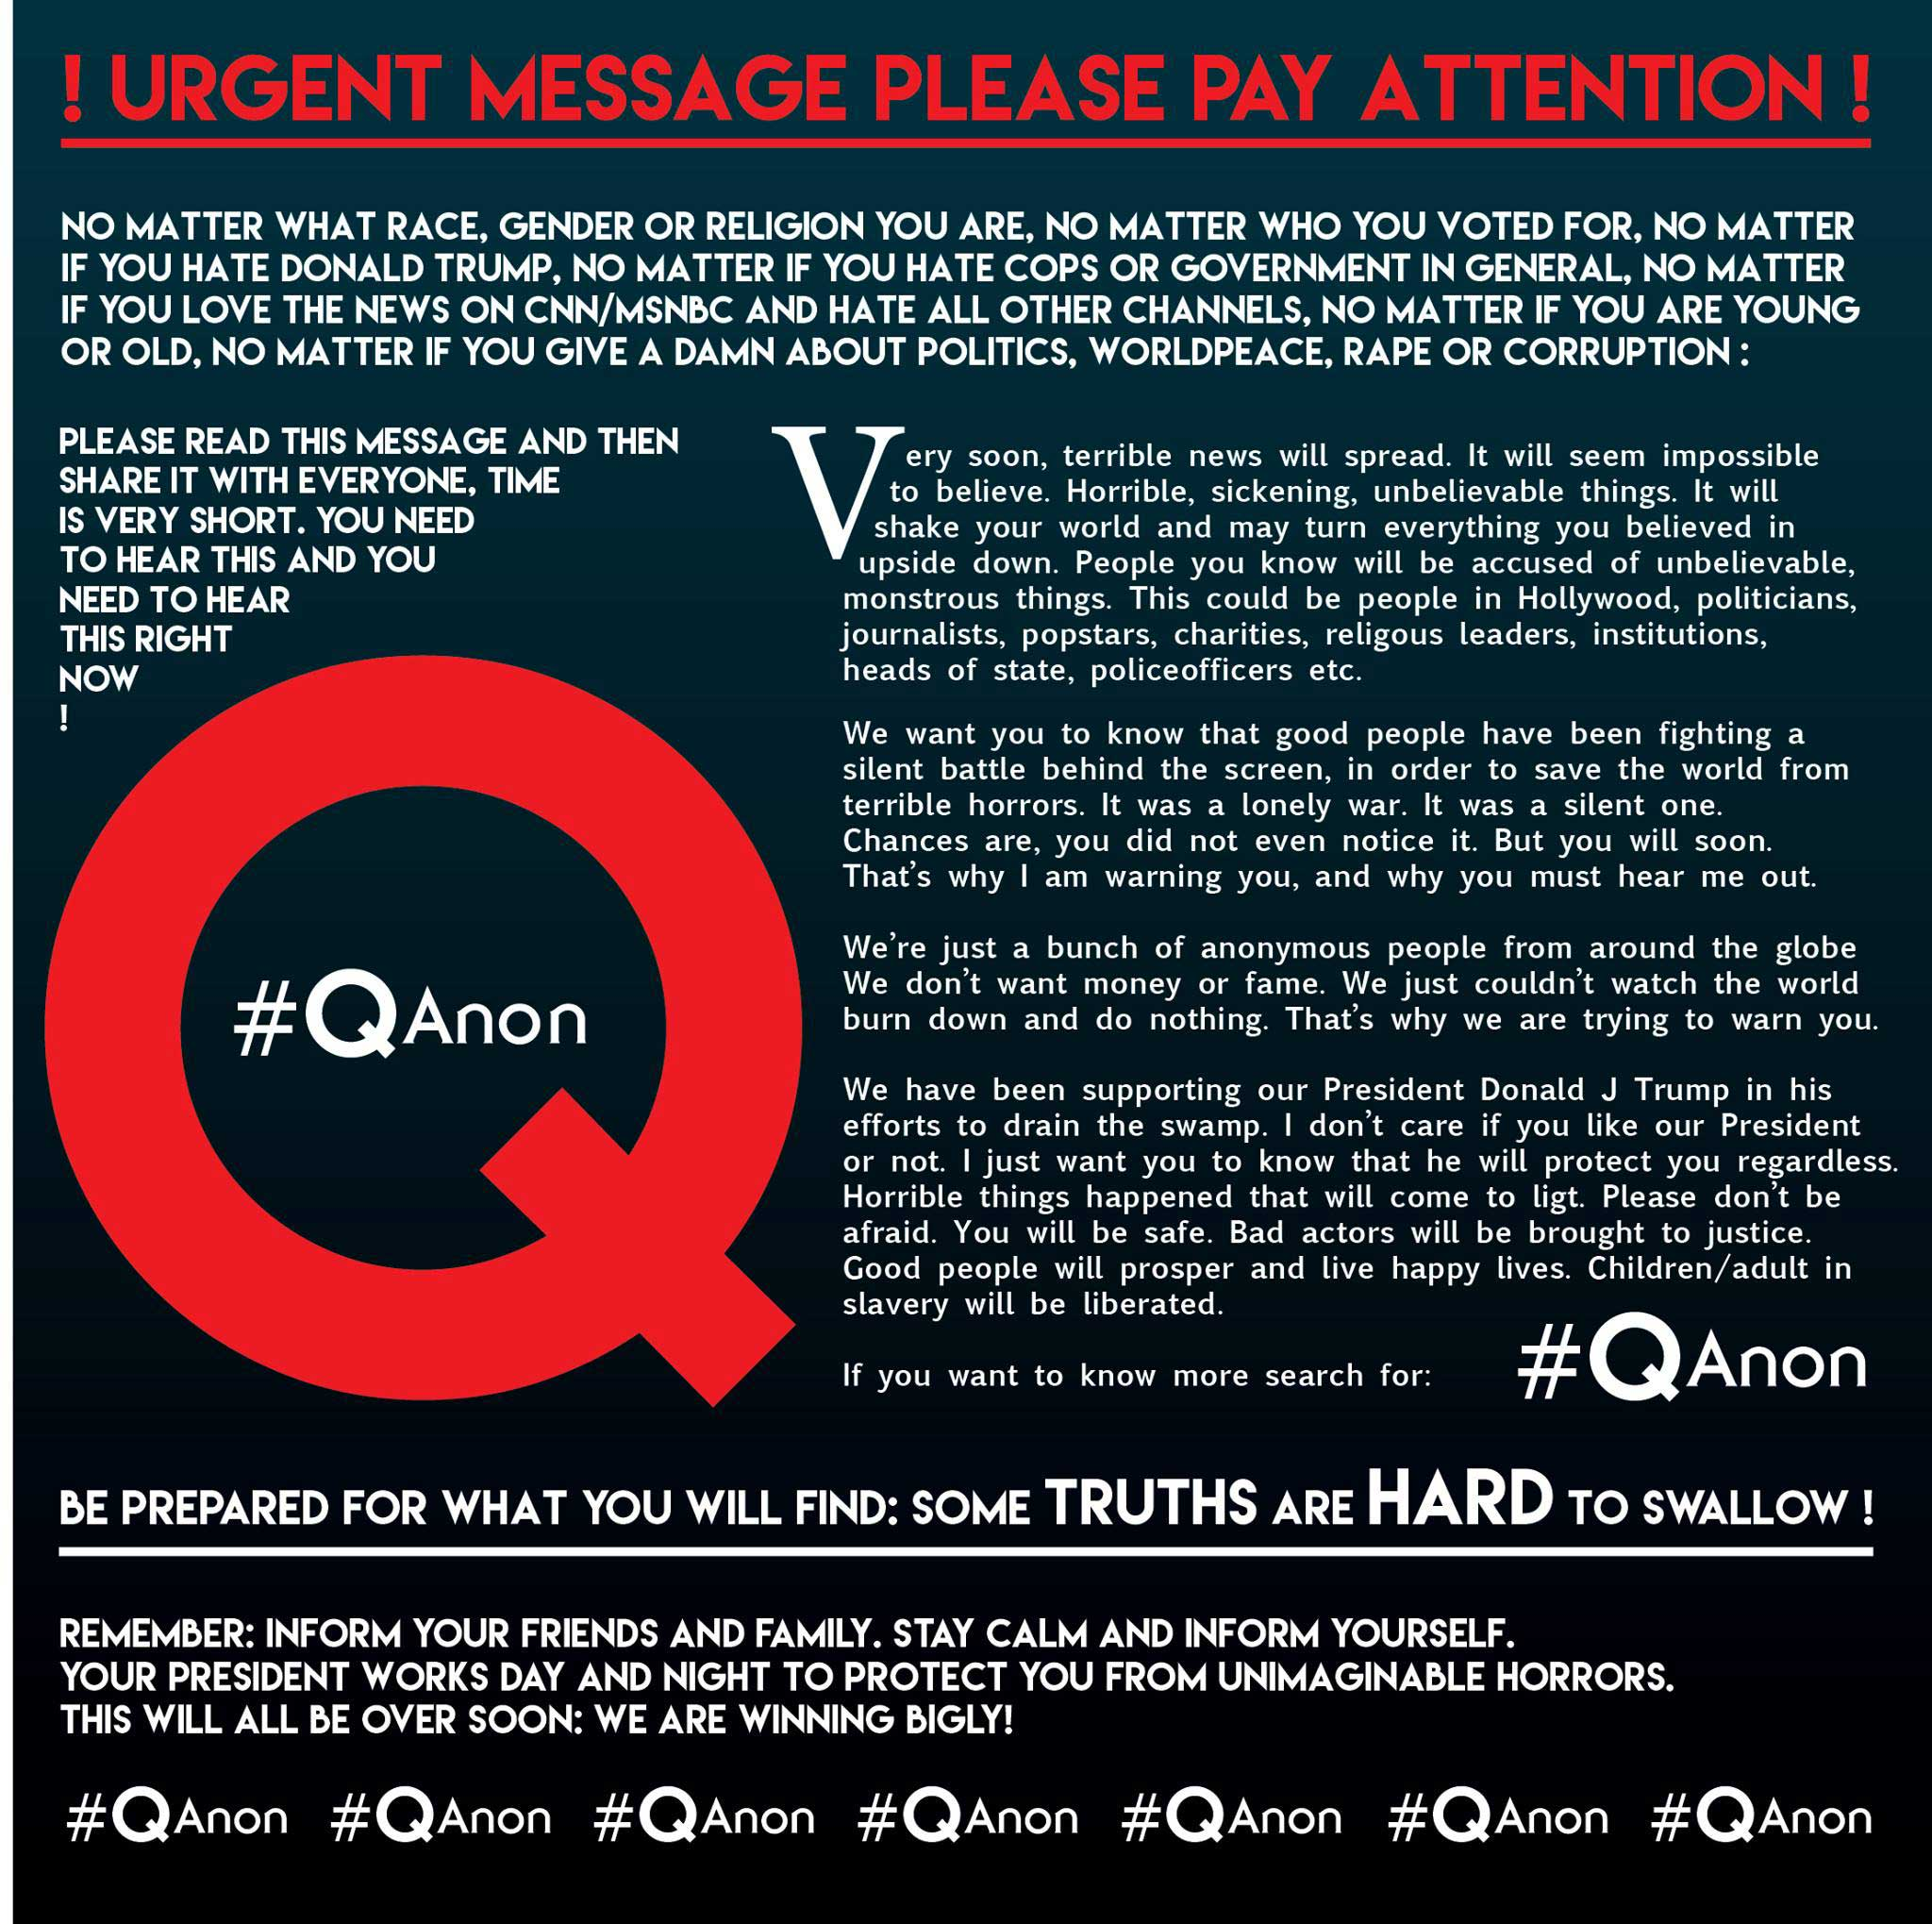 QAnon_Message